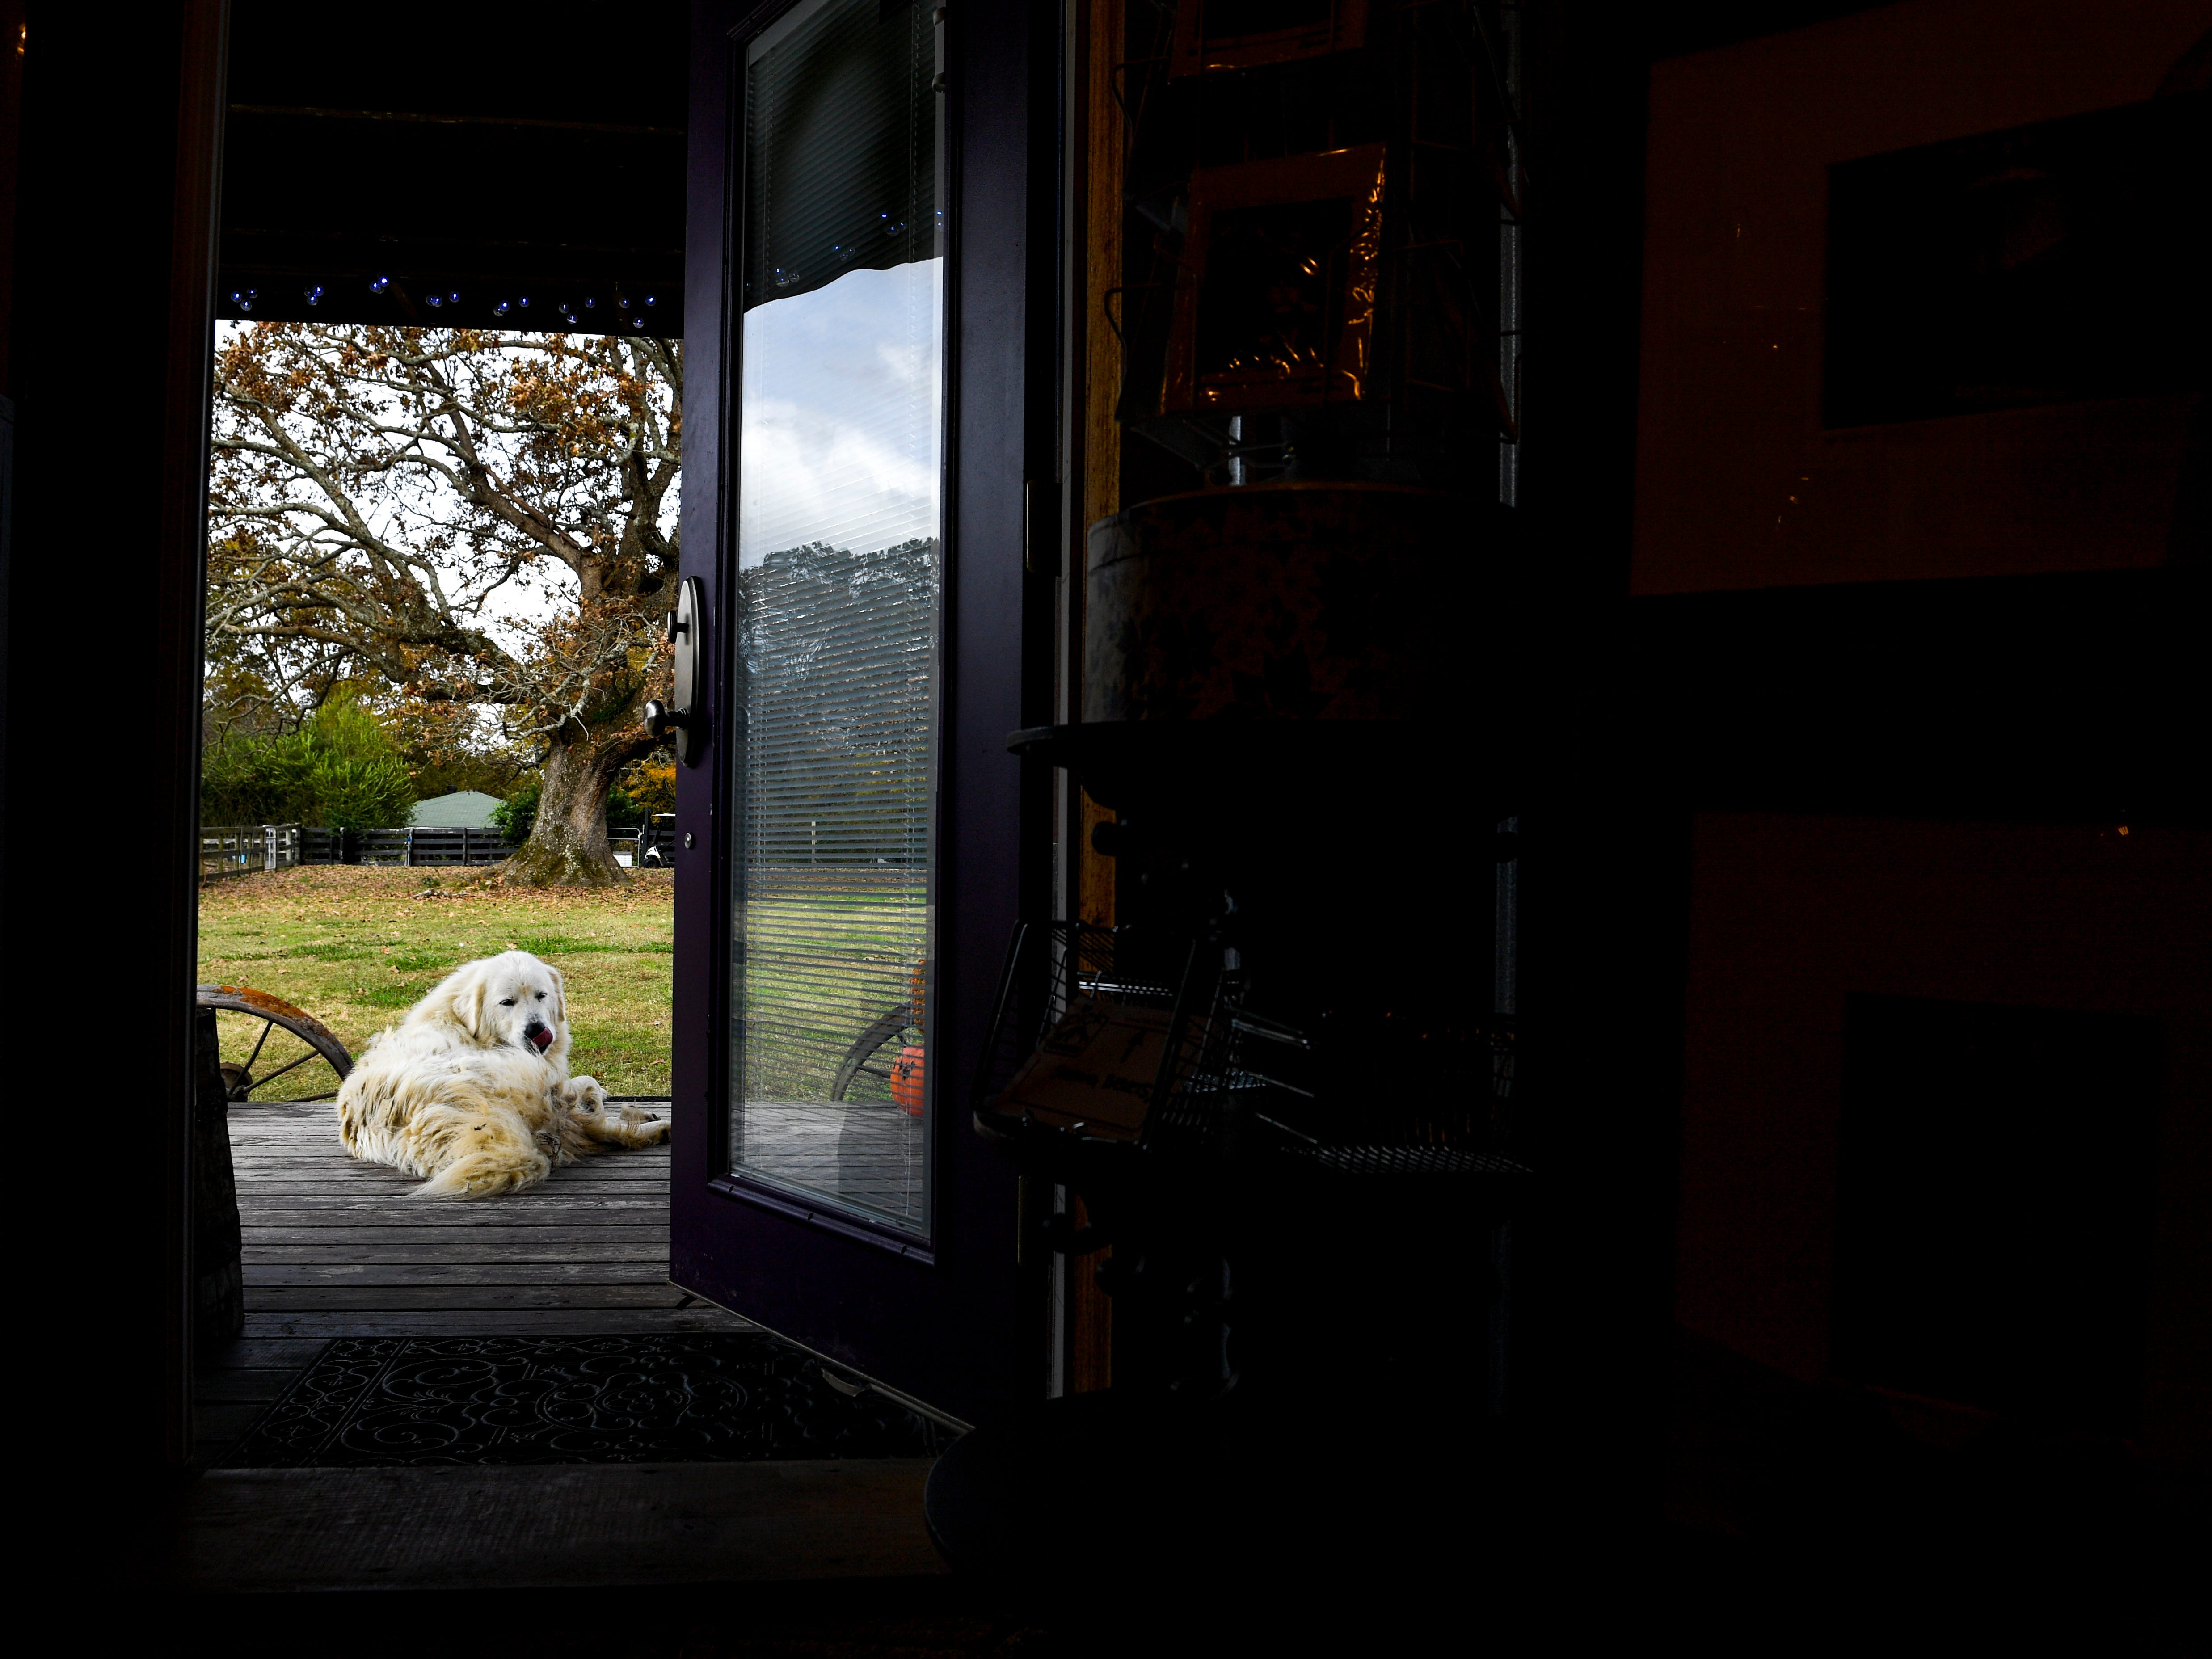 The Pitoni's Great Pyrenees Dusty sits on the front porch of the shop Valeria uses to sell her products at Stillwaters Farm in Henderson, Tenn., on Monday, Nov. 5, 2018.